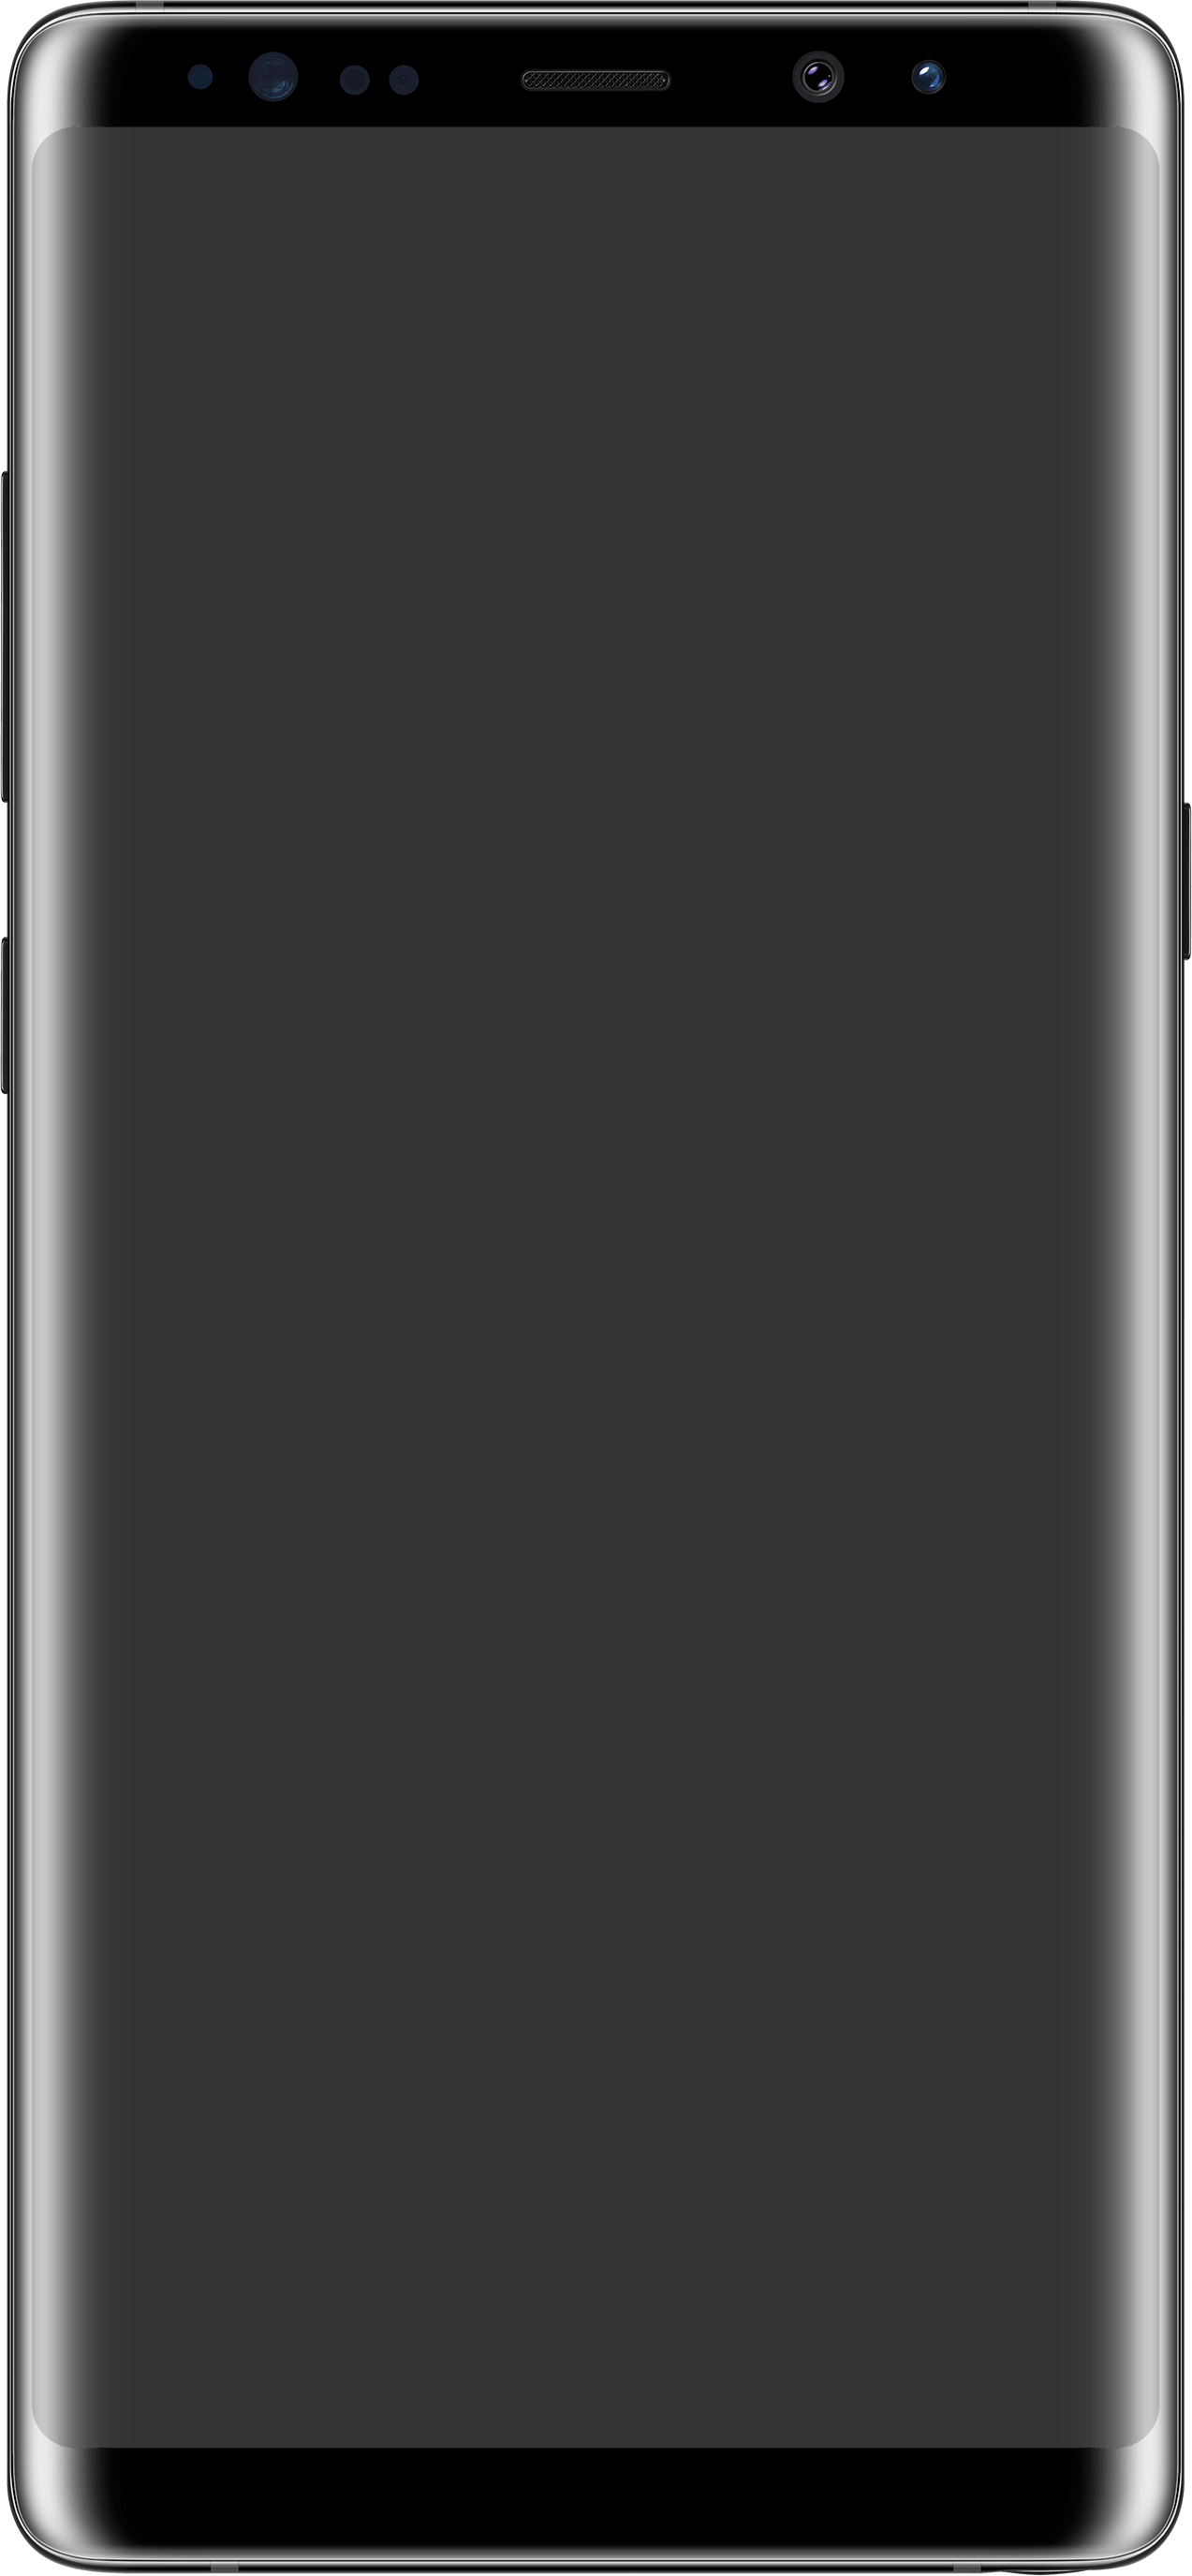 Samsung Galaxy Note 8 - Wikipedia